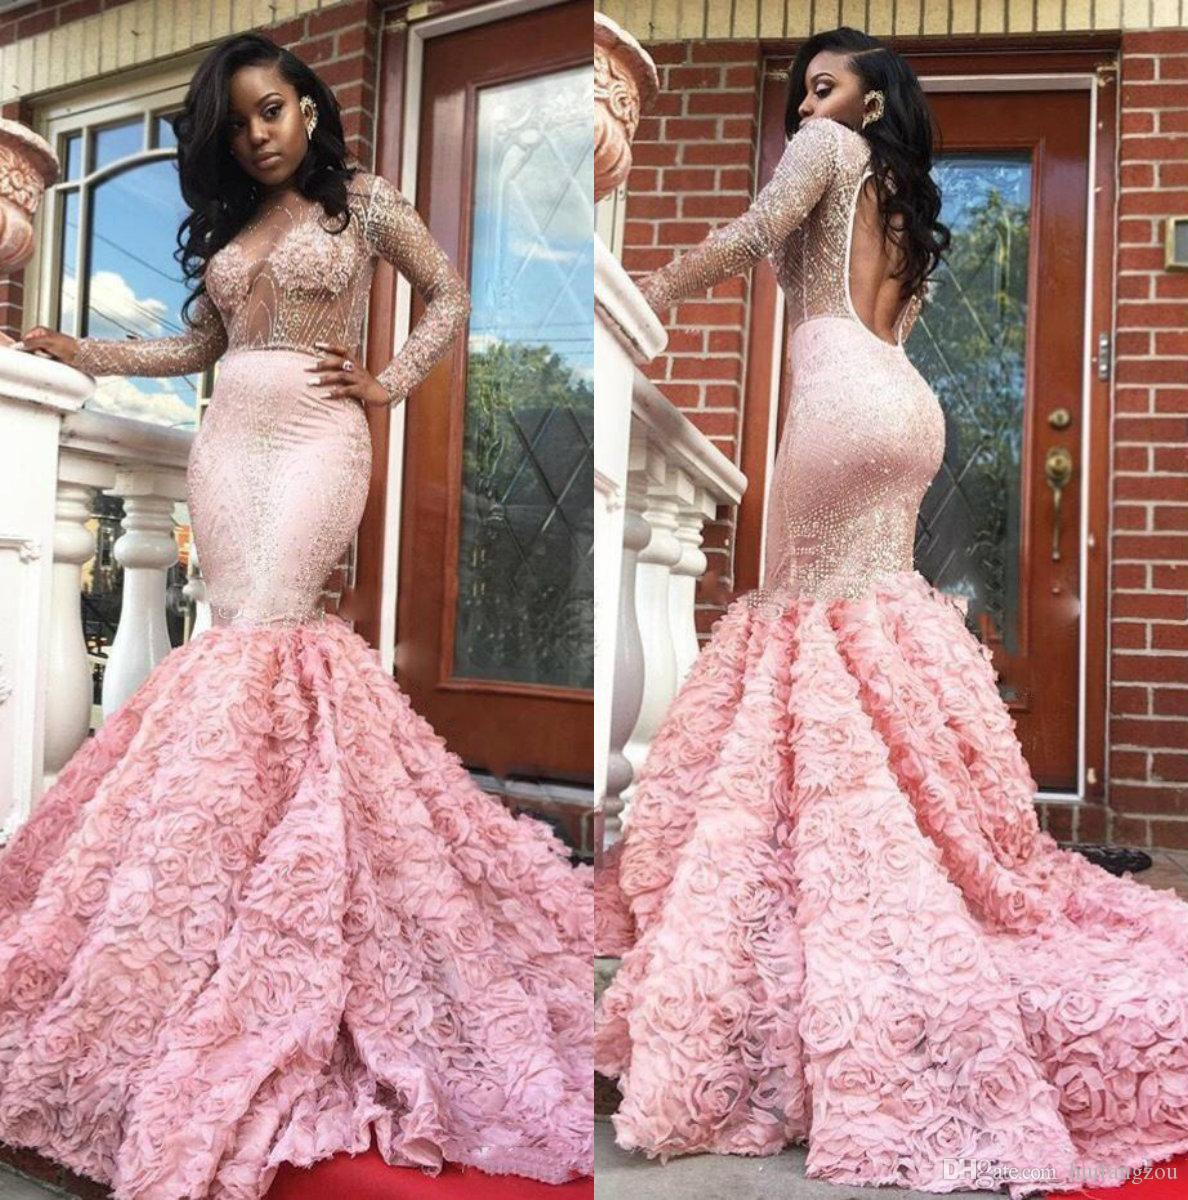 bb51d454d30 2018 Unique Mermaid Prom Dresses Design Luxury Pink Sheer Neck Sexy African  Vestidos De Festa Special Occasion Dresses Evening Gowns Online Prom Dresses  ...